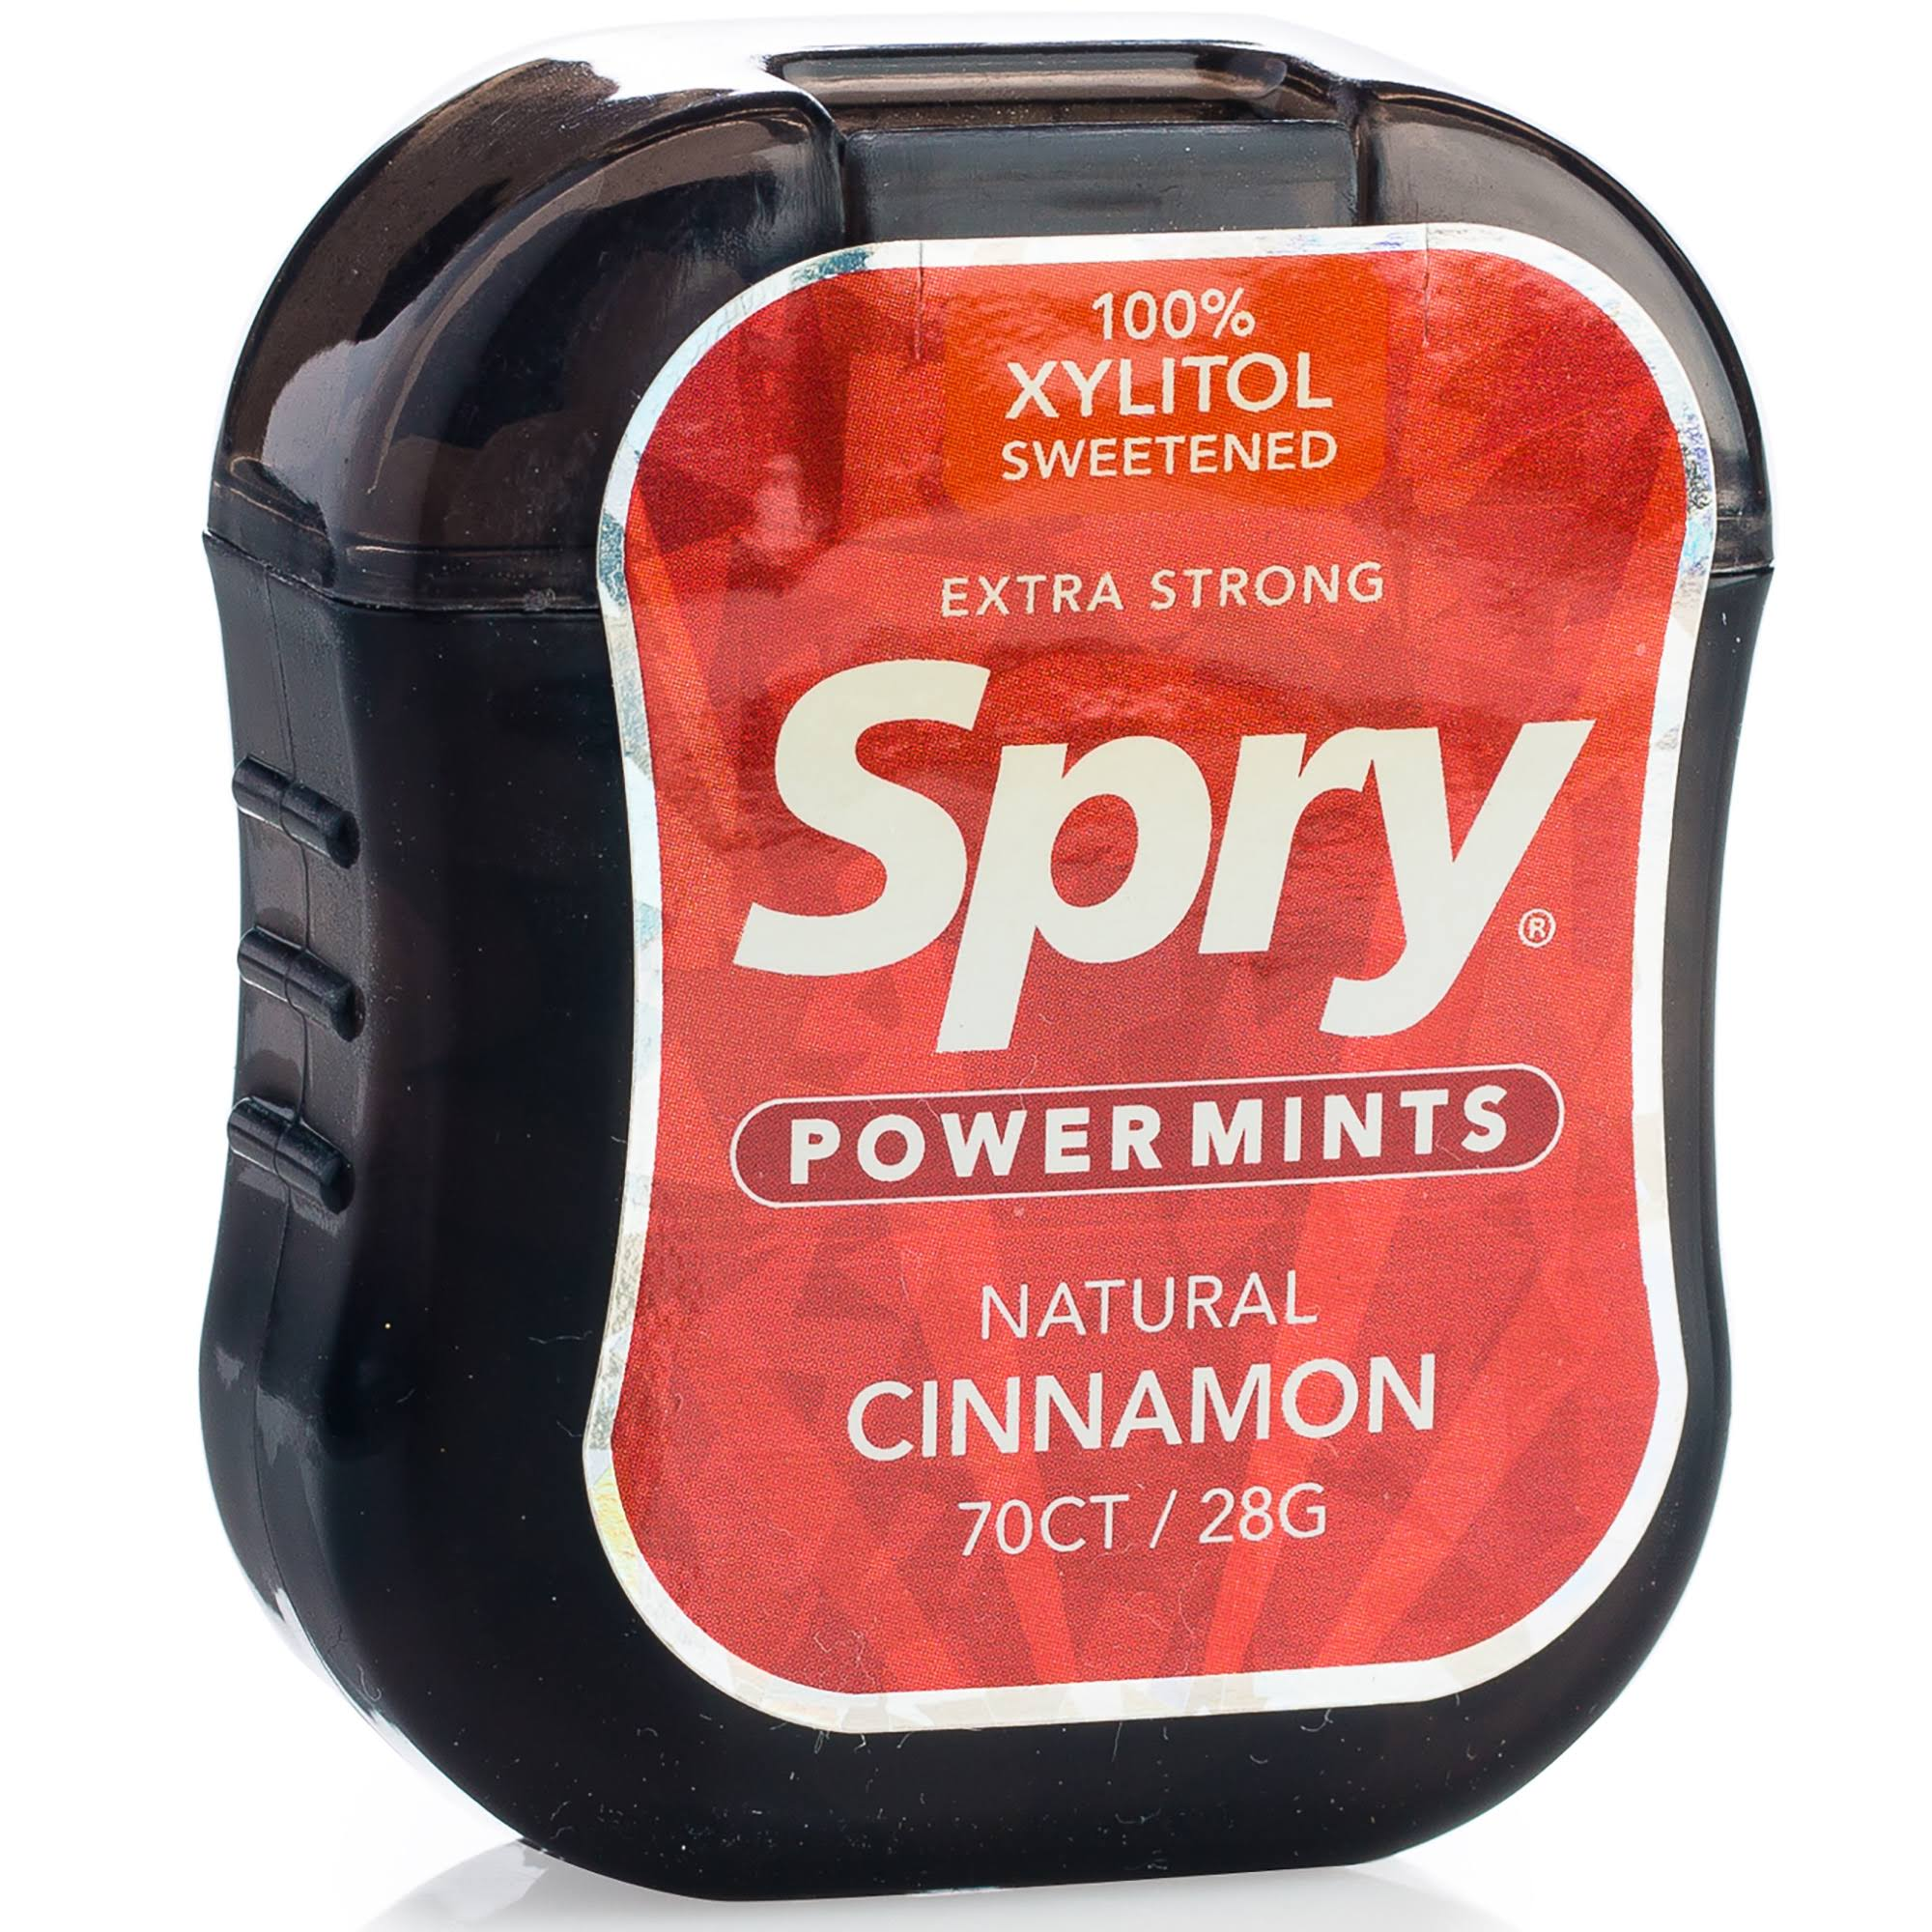 Spry Extra Strong Xylitol Power Mints - Cinnamon, 70ct